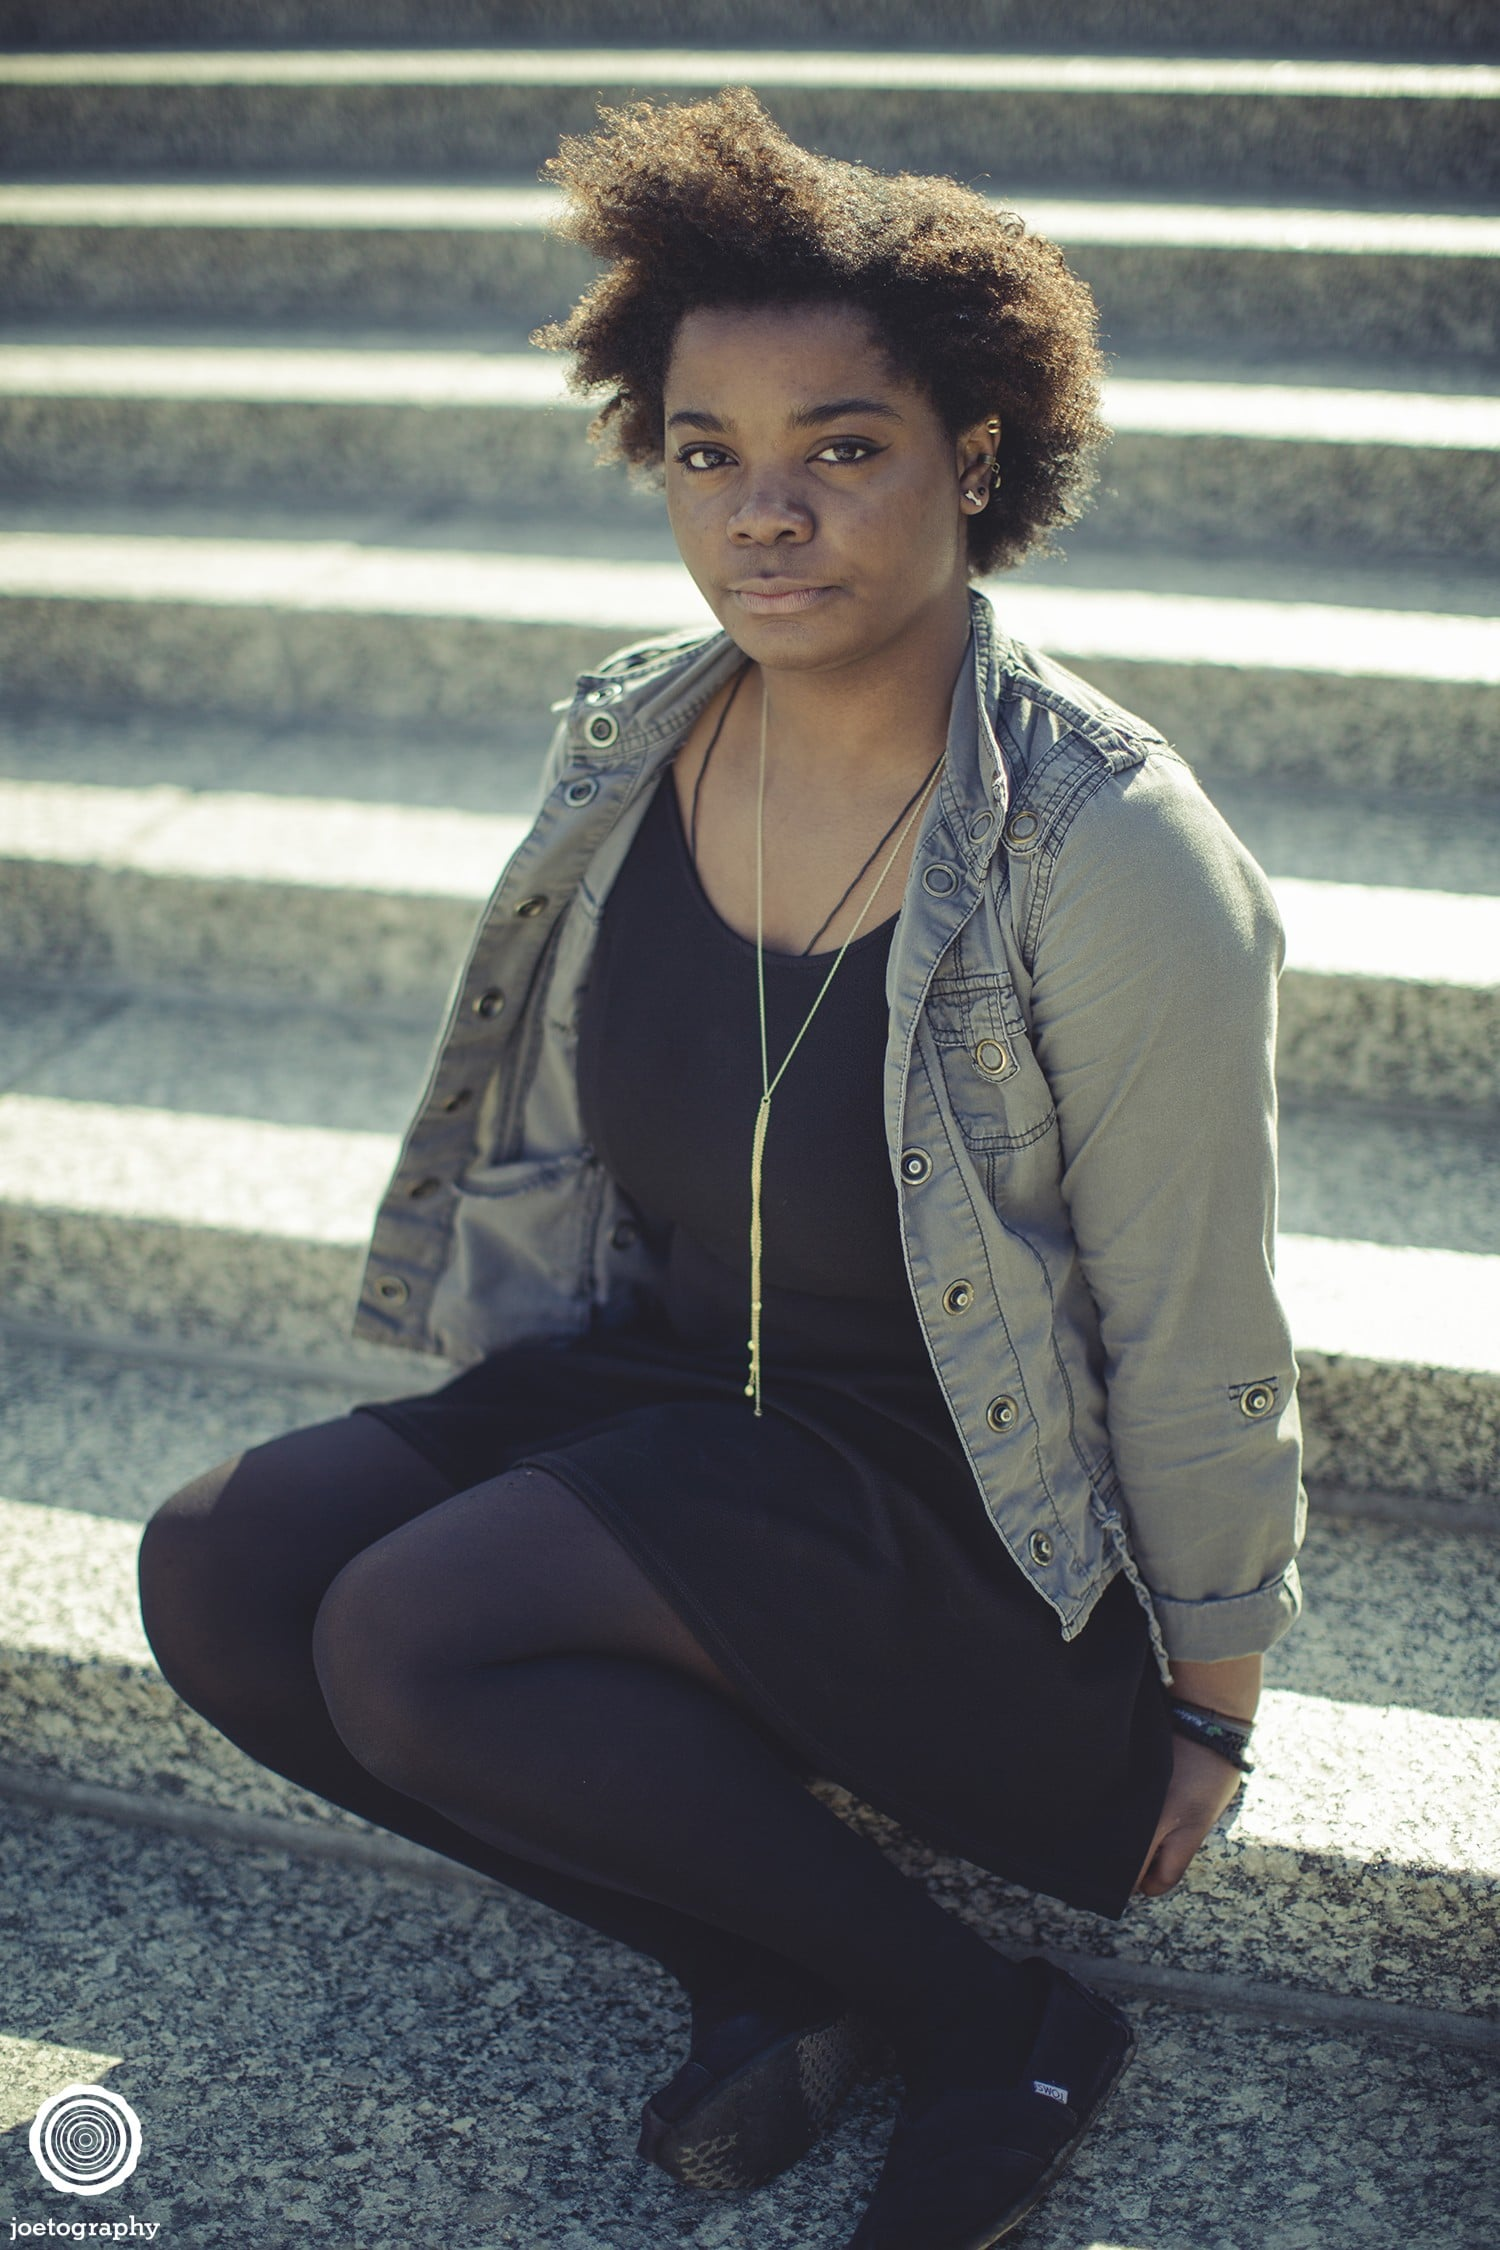 indianapolis-seniorphotos-ytoyosi-7